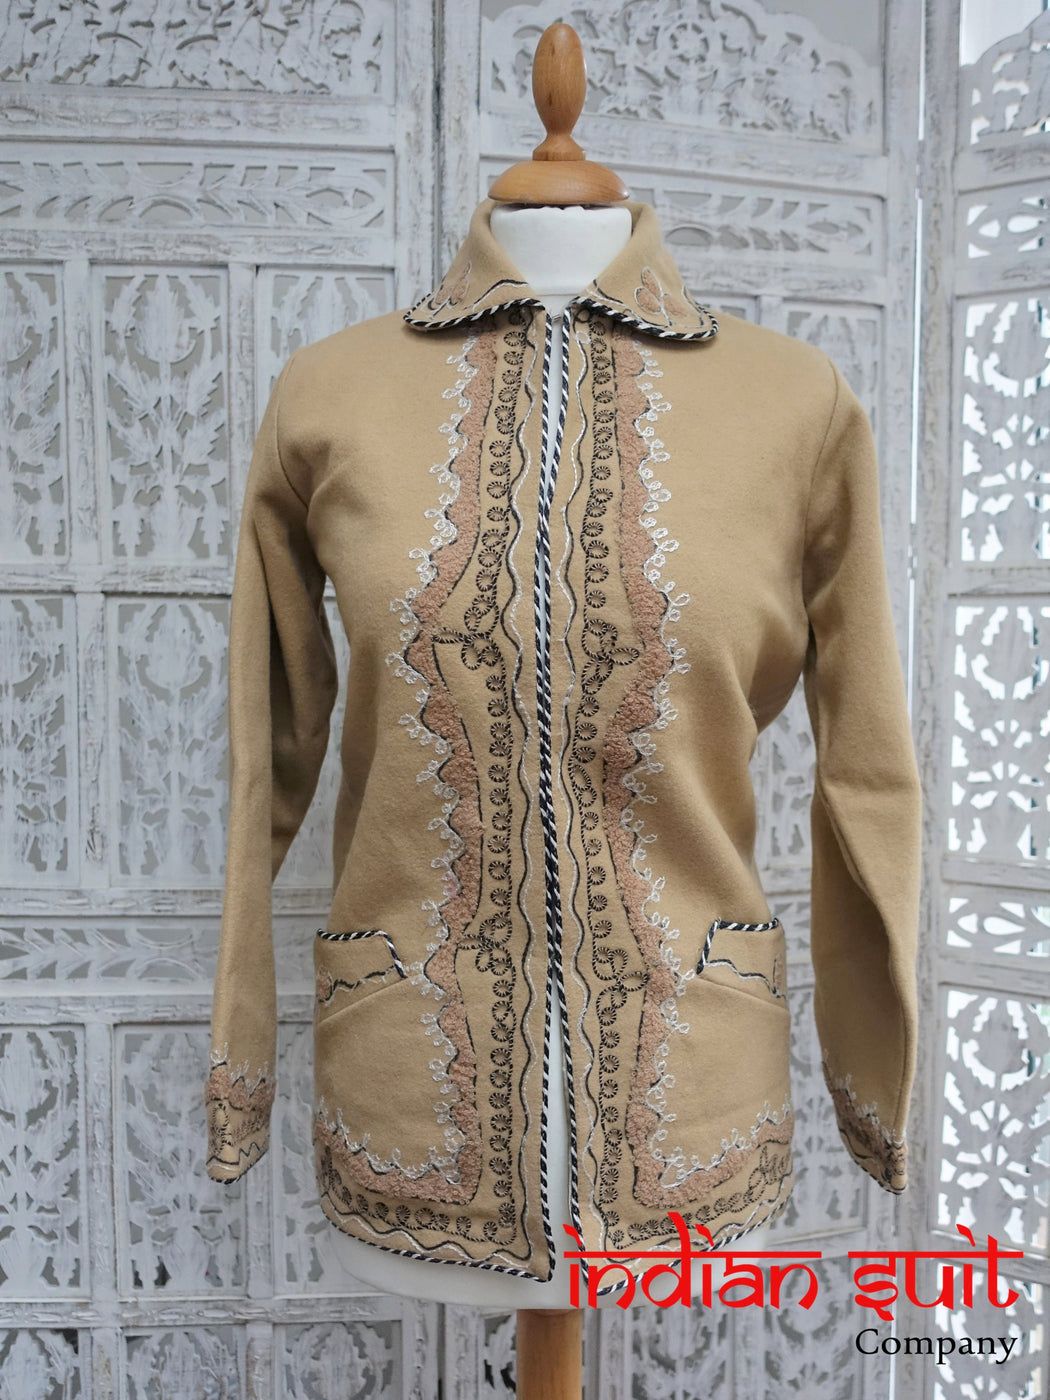 Camel Hand Stitched Handmade Jacket - Preloved - Indian Suit Company